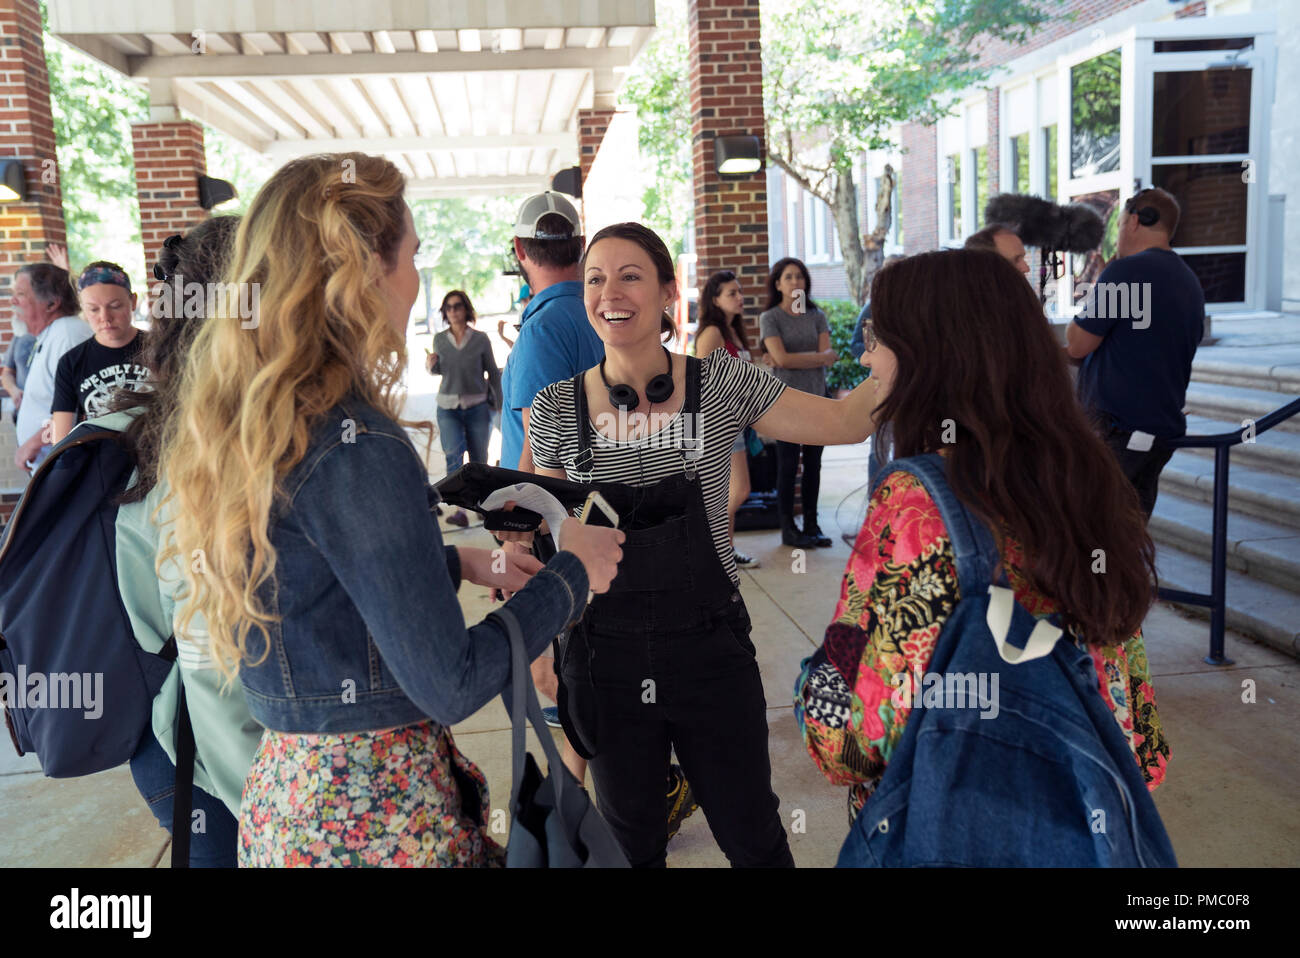 (L to R) GERALDINE VISWANATHAN as Kayla, KATHRYN NEWTON as Julie, director KAY CANNON and GIDEON ADLON as Sam on the set of 'Blockers,' the directorial debut of Cannon (writer of the 'Pitch Perfect' series).  When three parents discover their daughters' pact to lose their virginity at prom, they launch a covert one-night operation to stop the teens from sealing the deal. 2018 Universal Studios - Stock Image